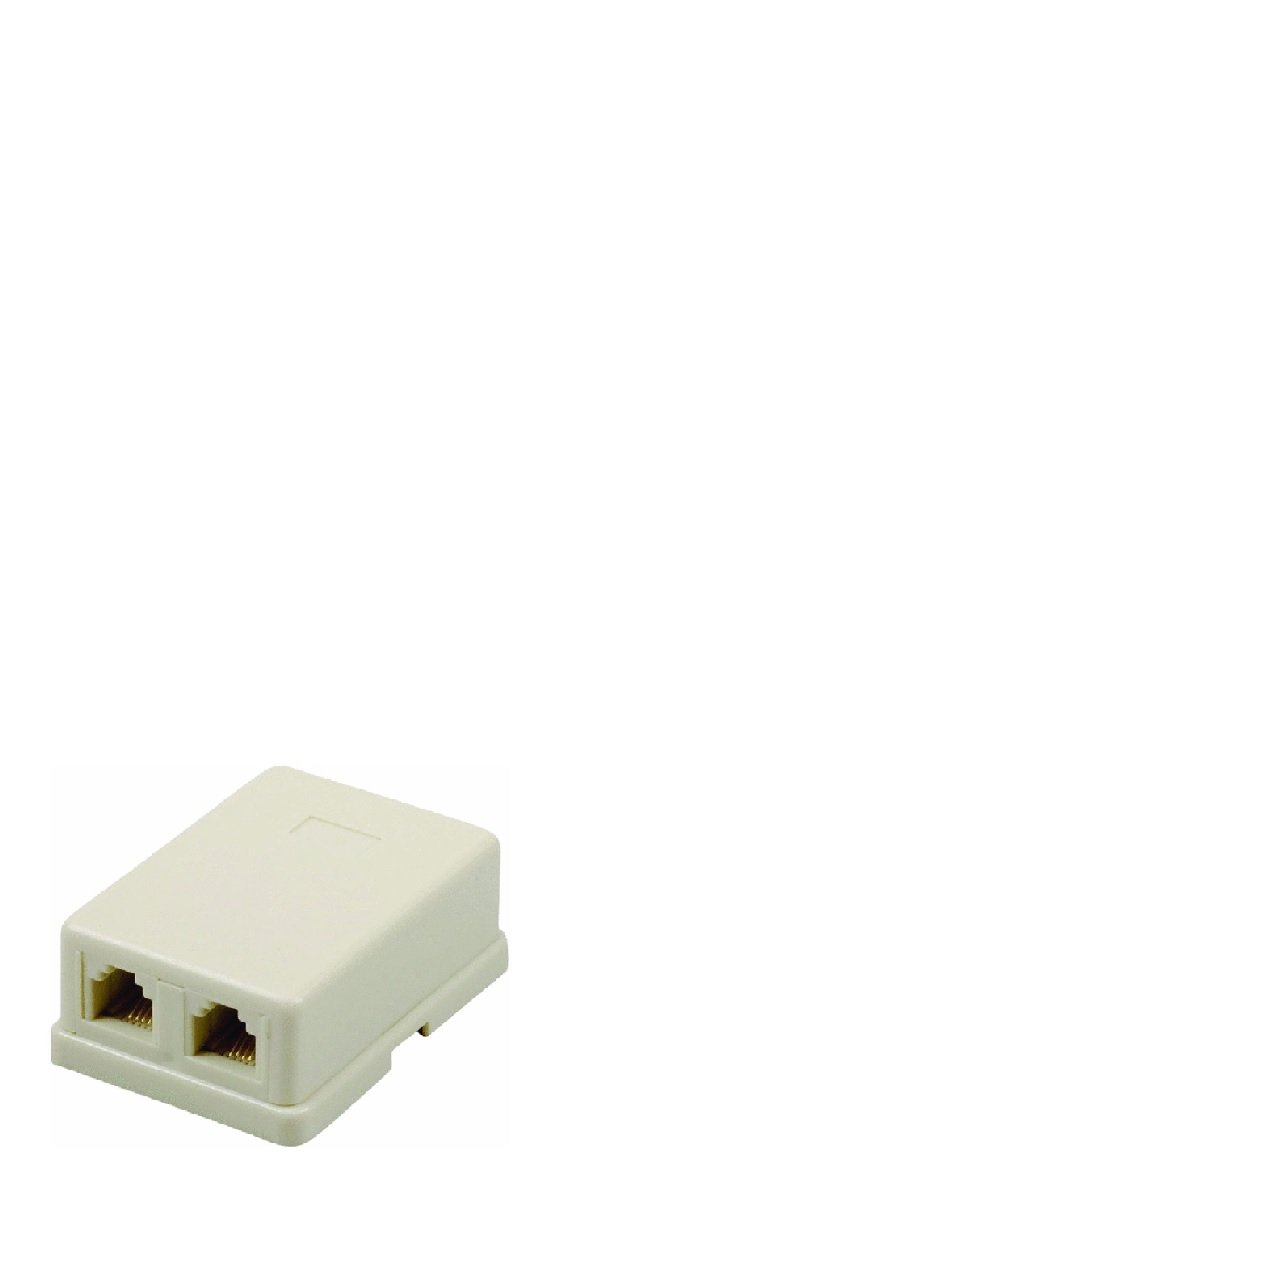 Tgom Phone dual Surface Mount Jack